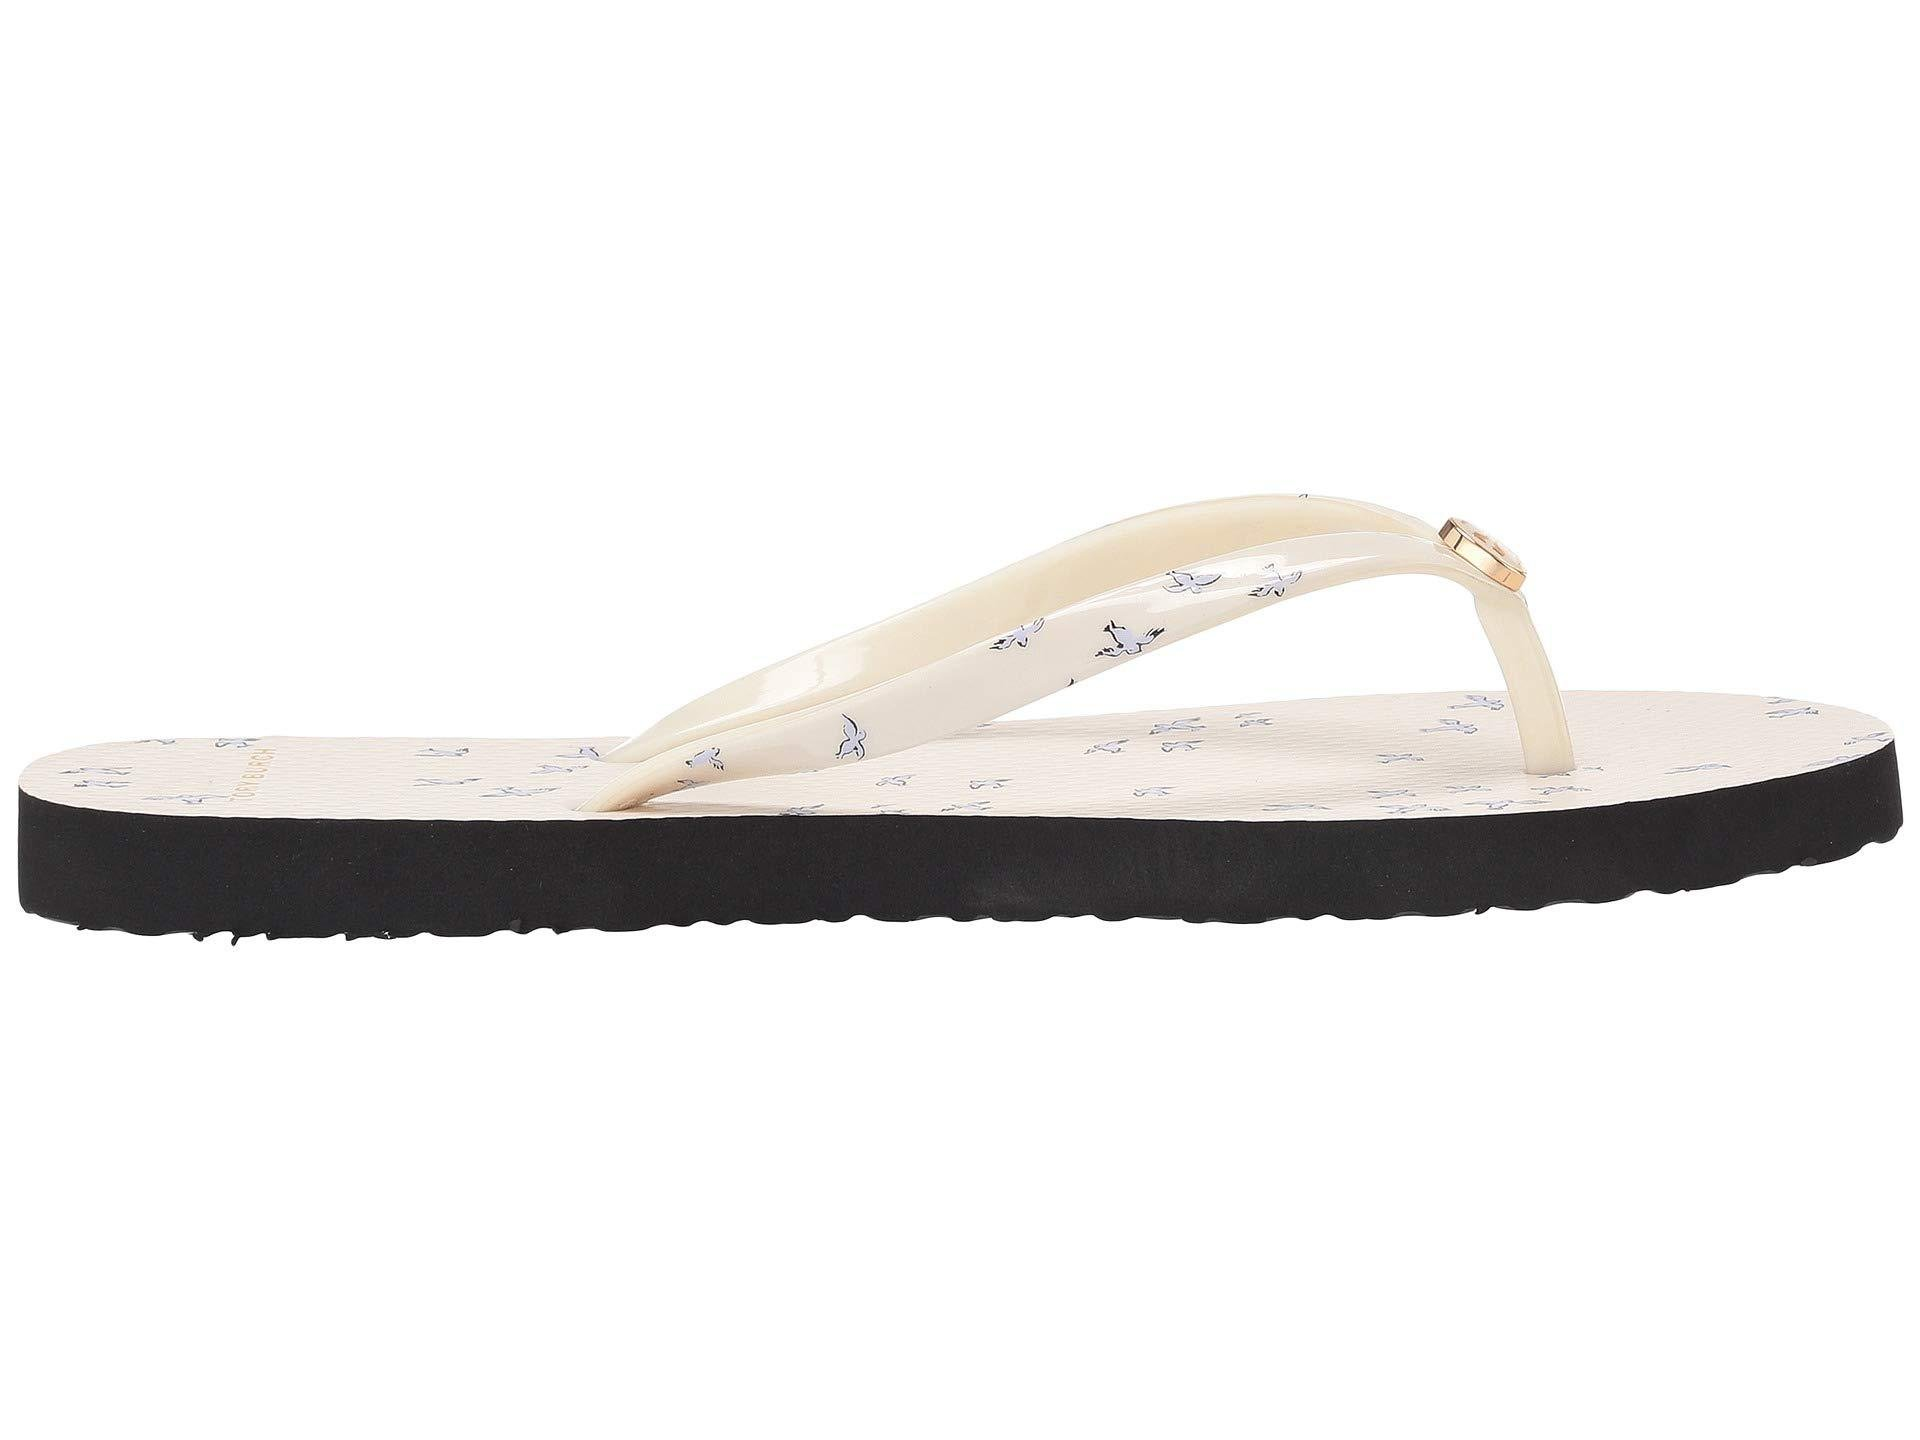 6bfa12e81 Lyst - Tory Burch Printed Thin Flip-flop (mint Early Bird) Women s Sandals  in White